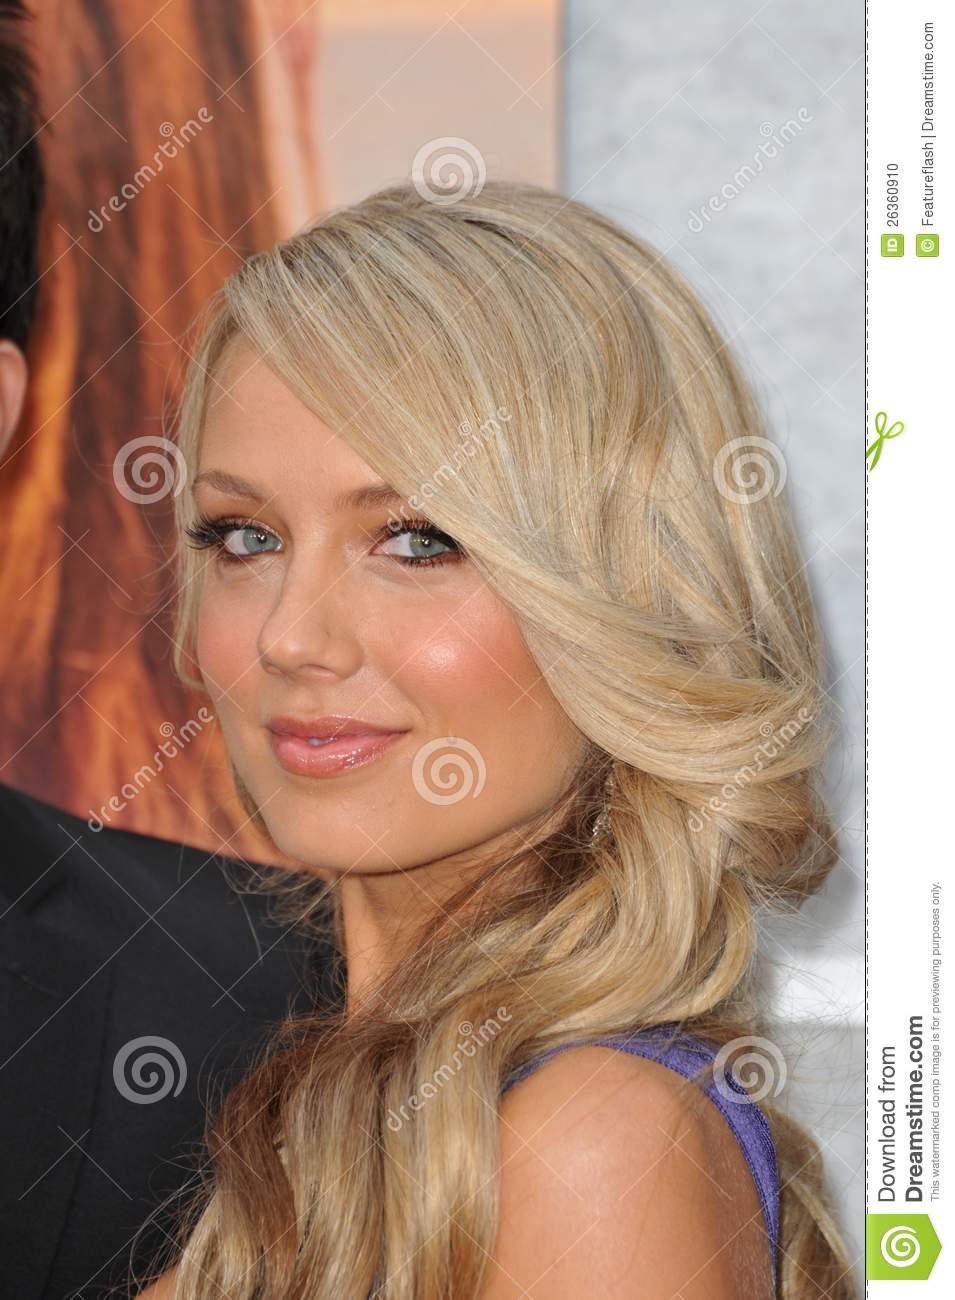 melissa ordway movies and tv shows